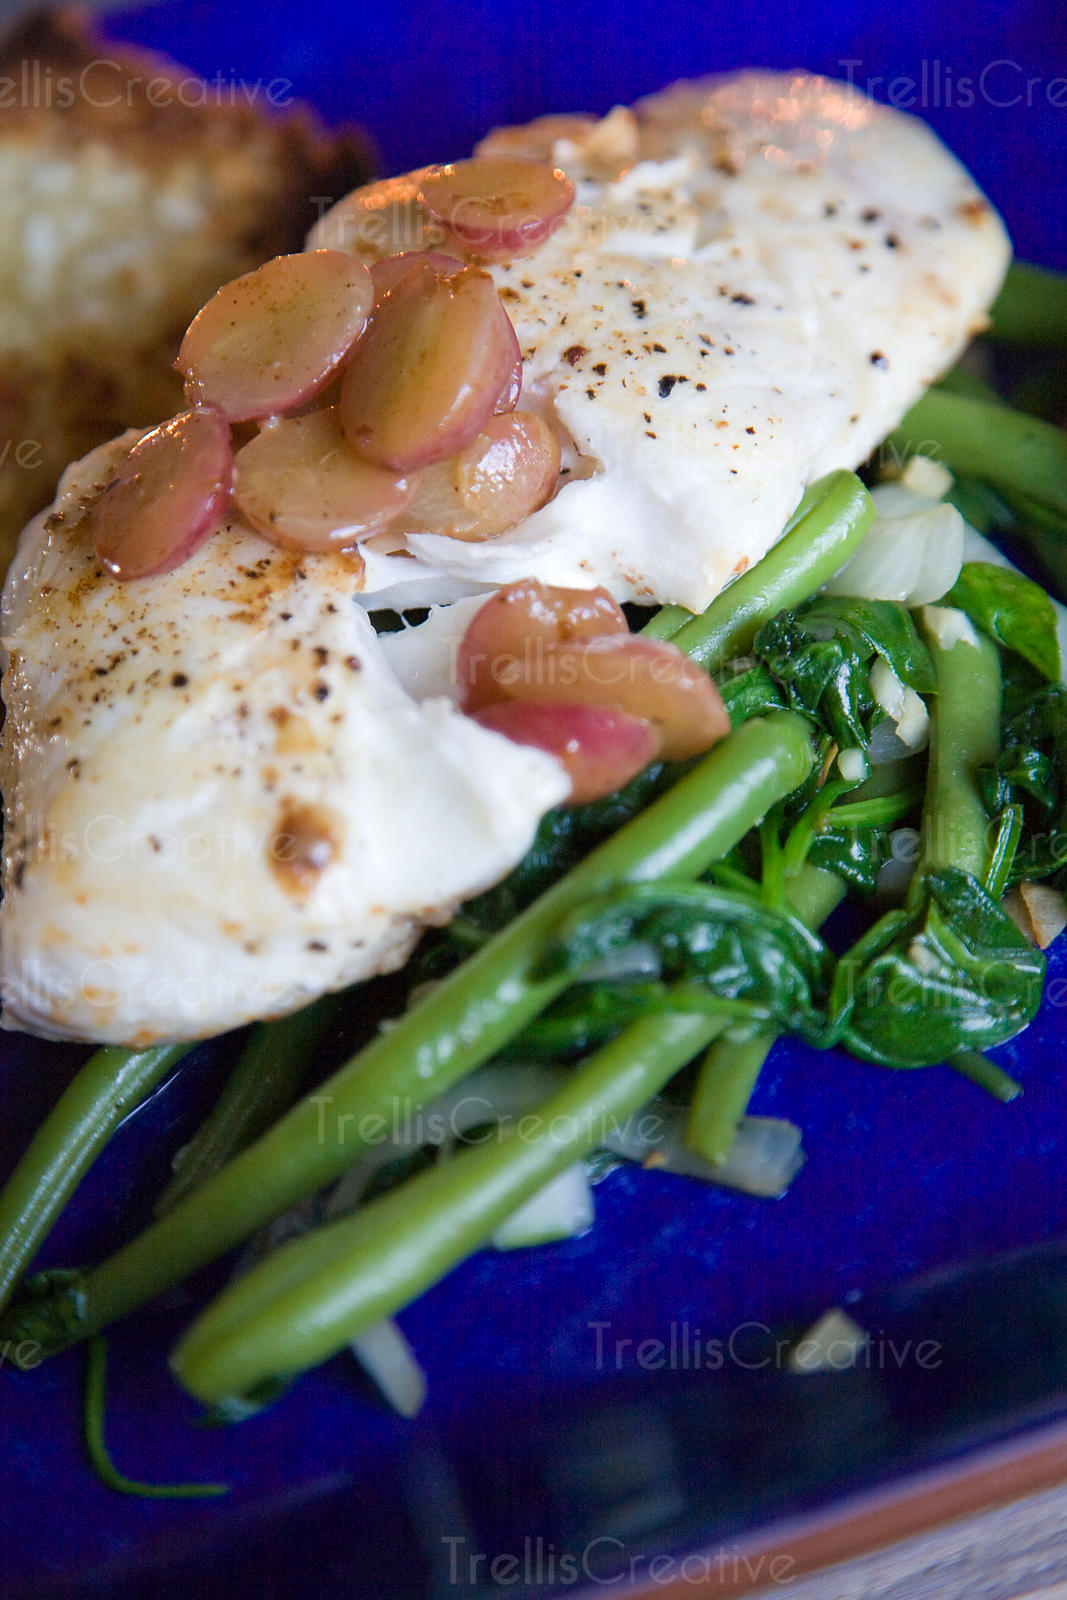 Pan seared halibut with warm grapes over steamed broccoli